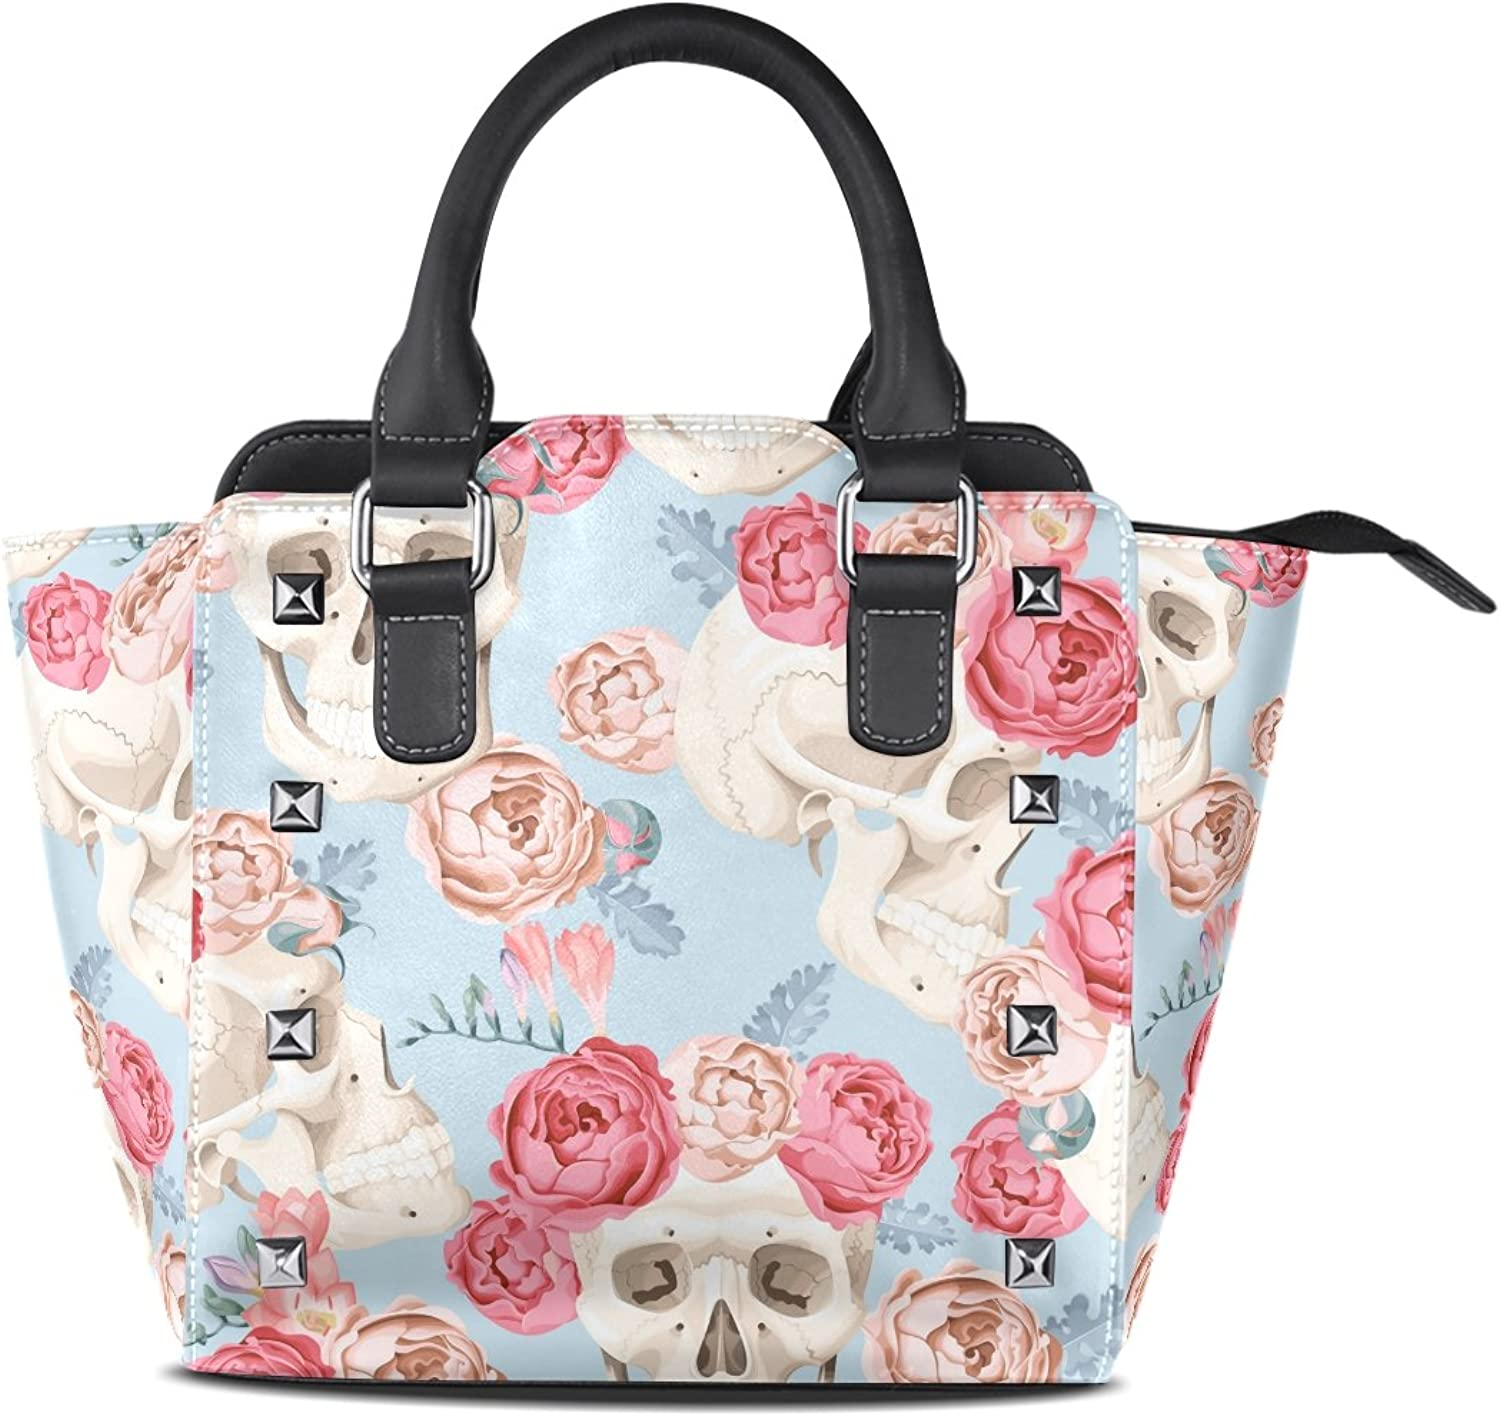 Sunlome Skulls and pinks Print Women's Leather Tote Shoulder Bags Handbags